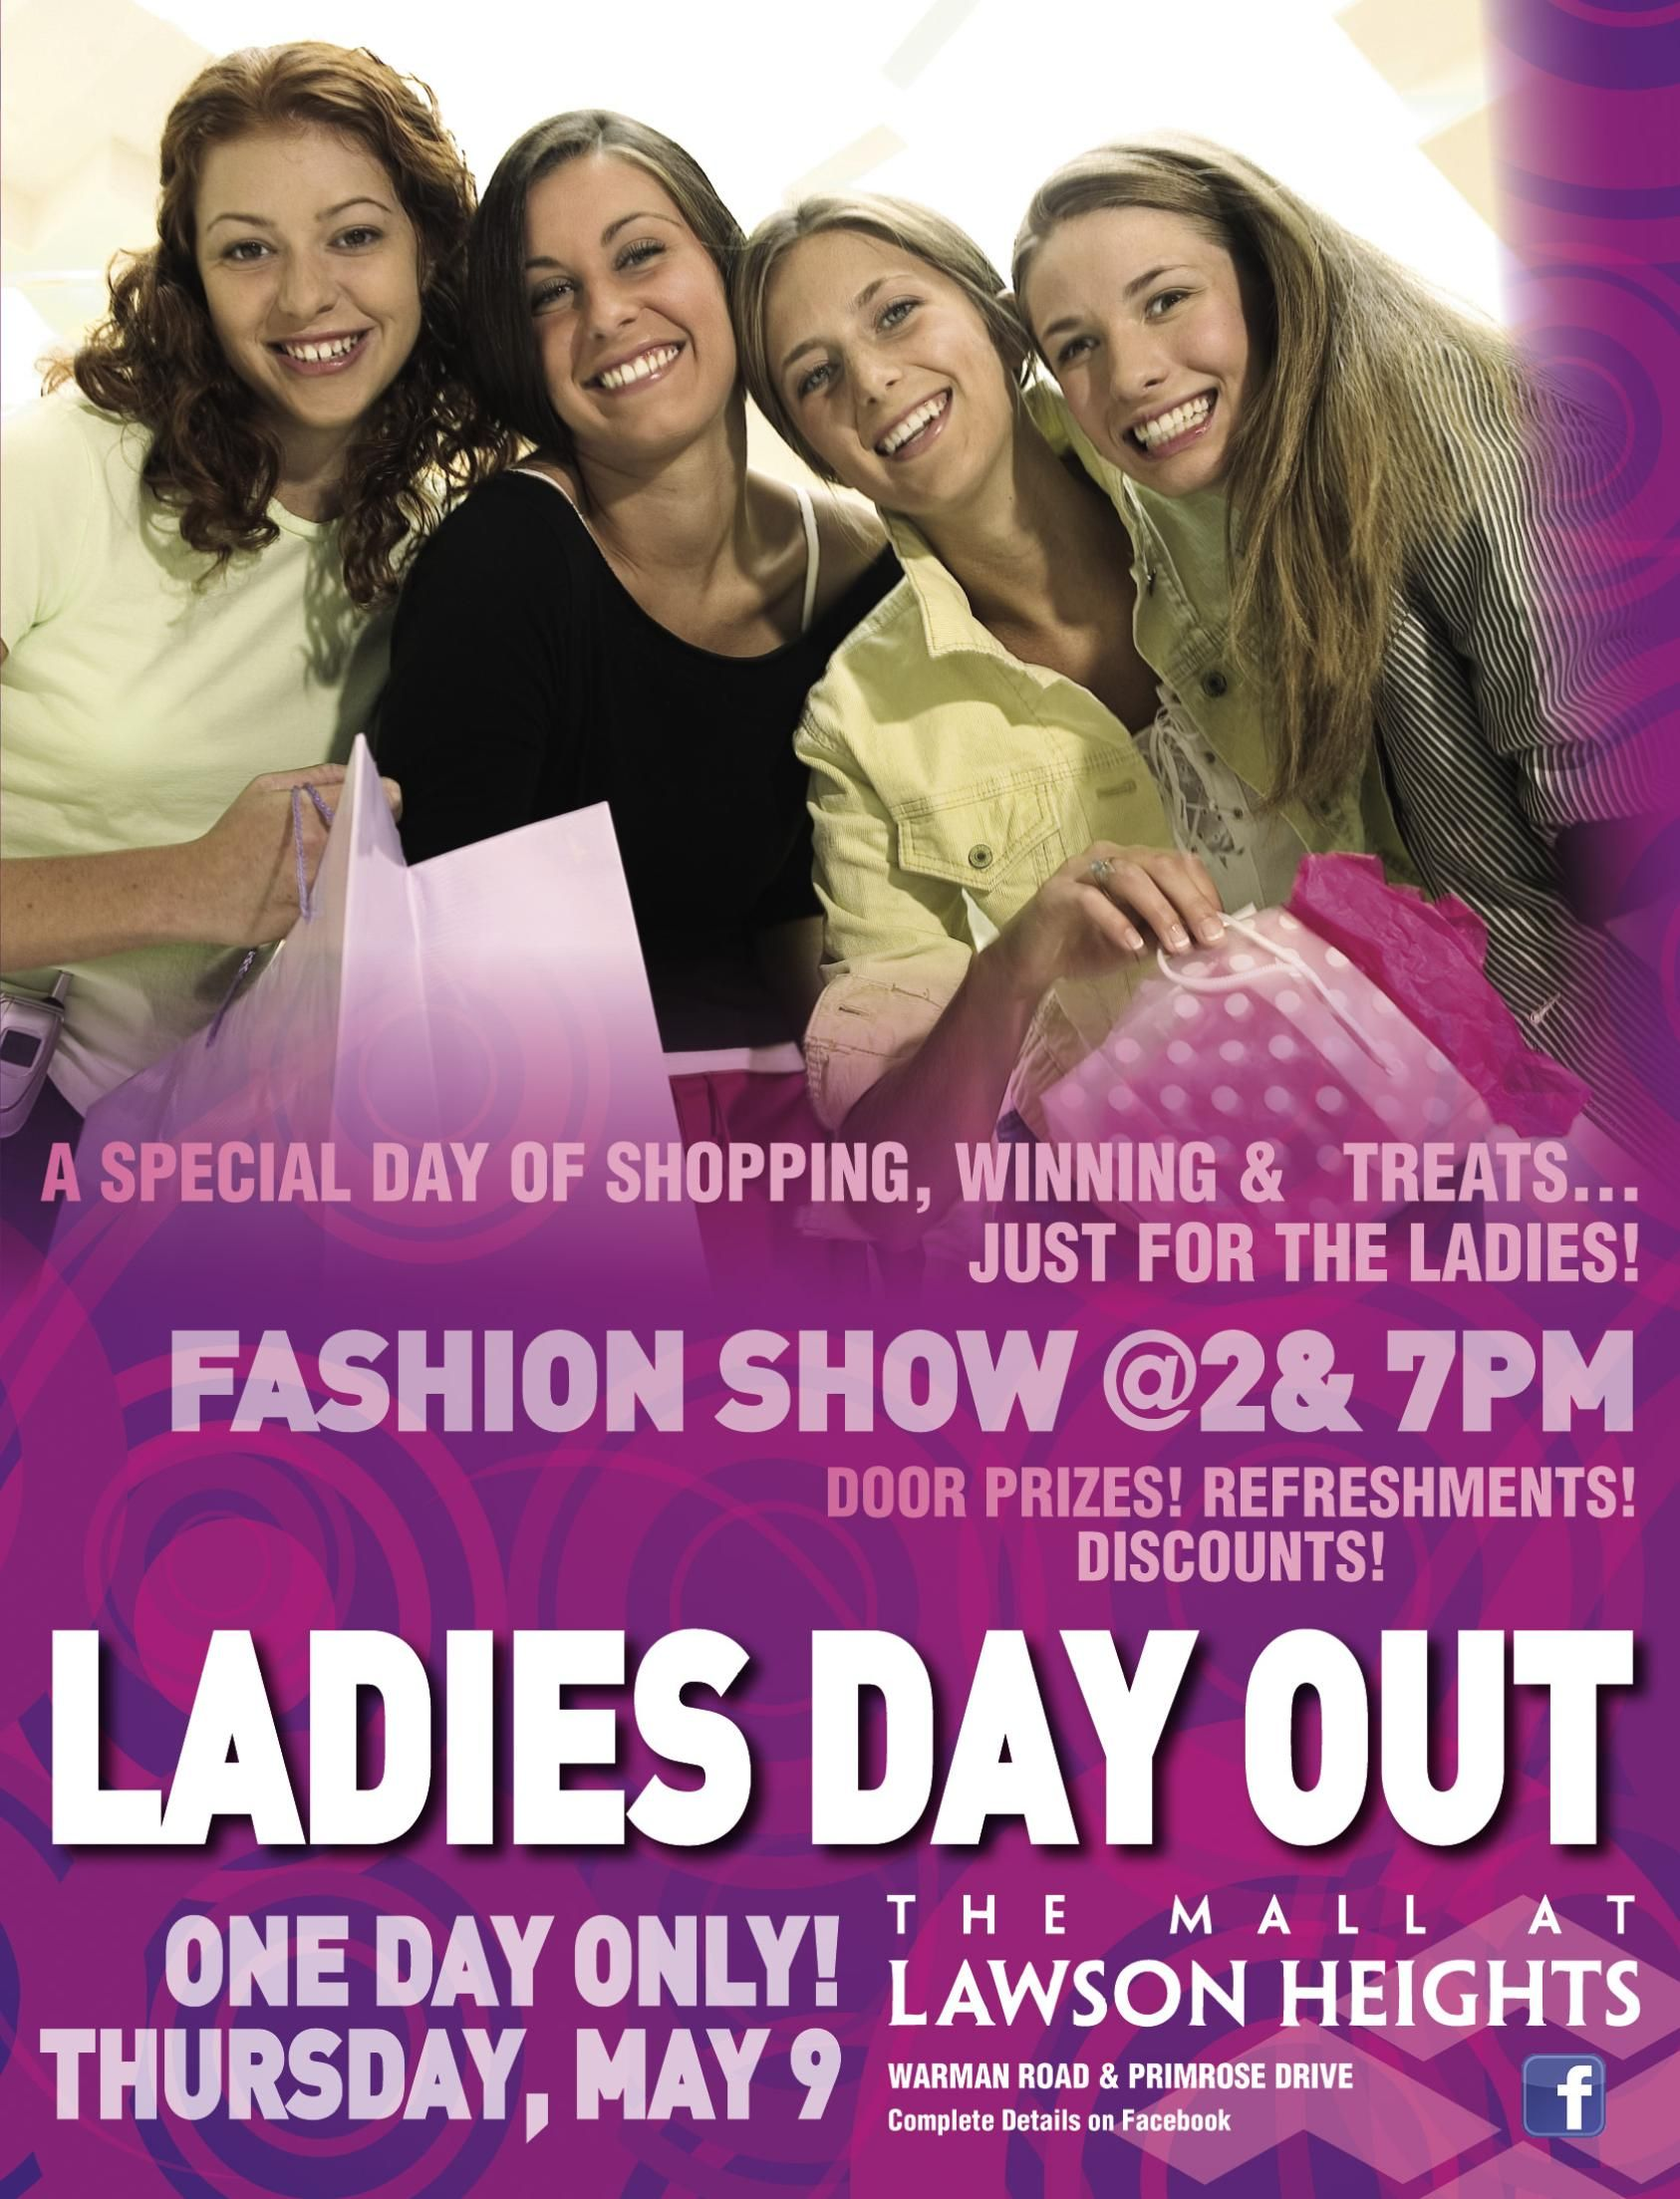 The mall will be hosting a Ladies Day Out on May 9, 2013 including 2 fashion shows, door prizes, discounts, refreshments and store specials! More details on specific prizes and specials to follow soon!